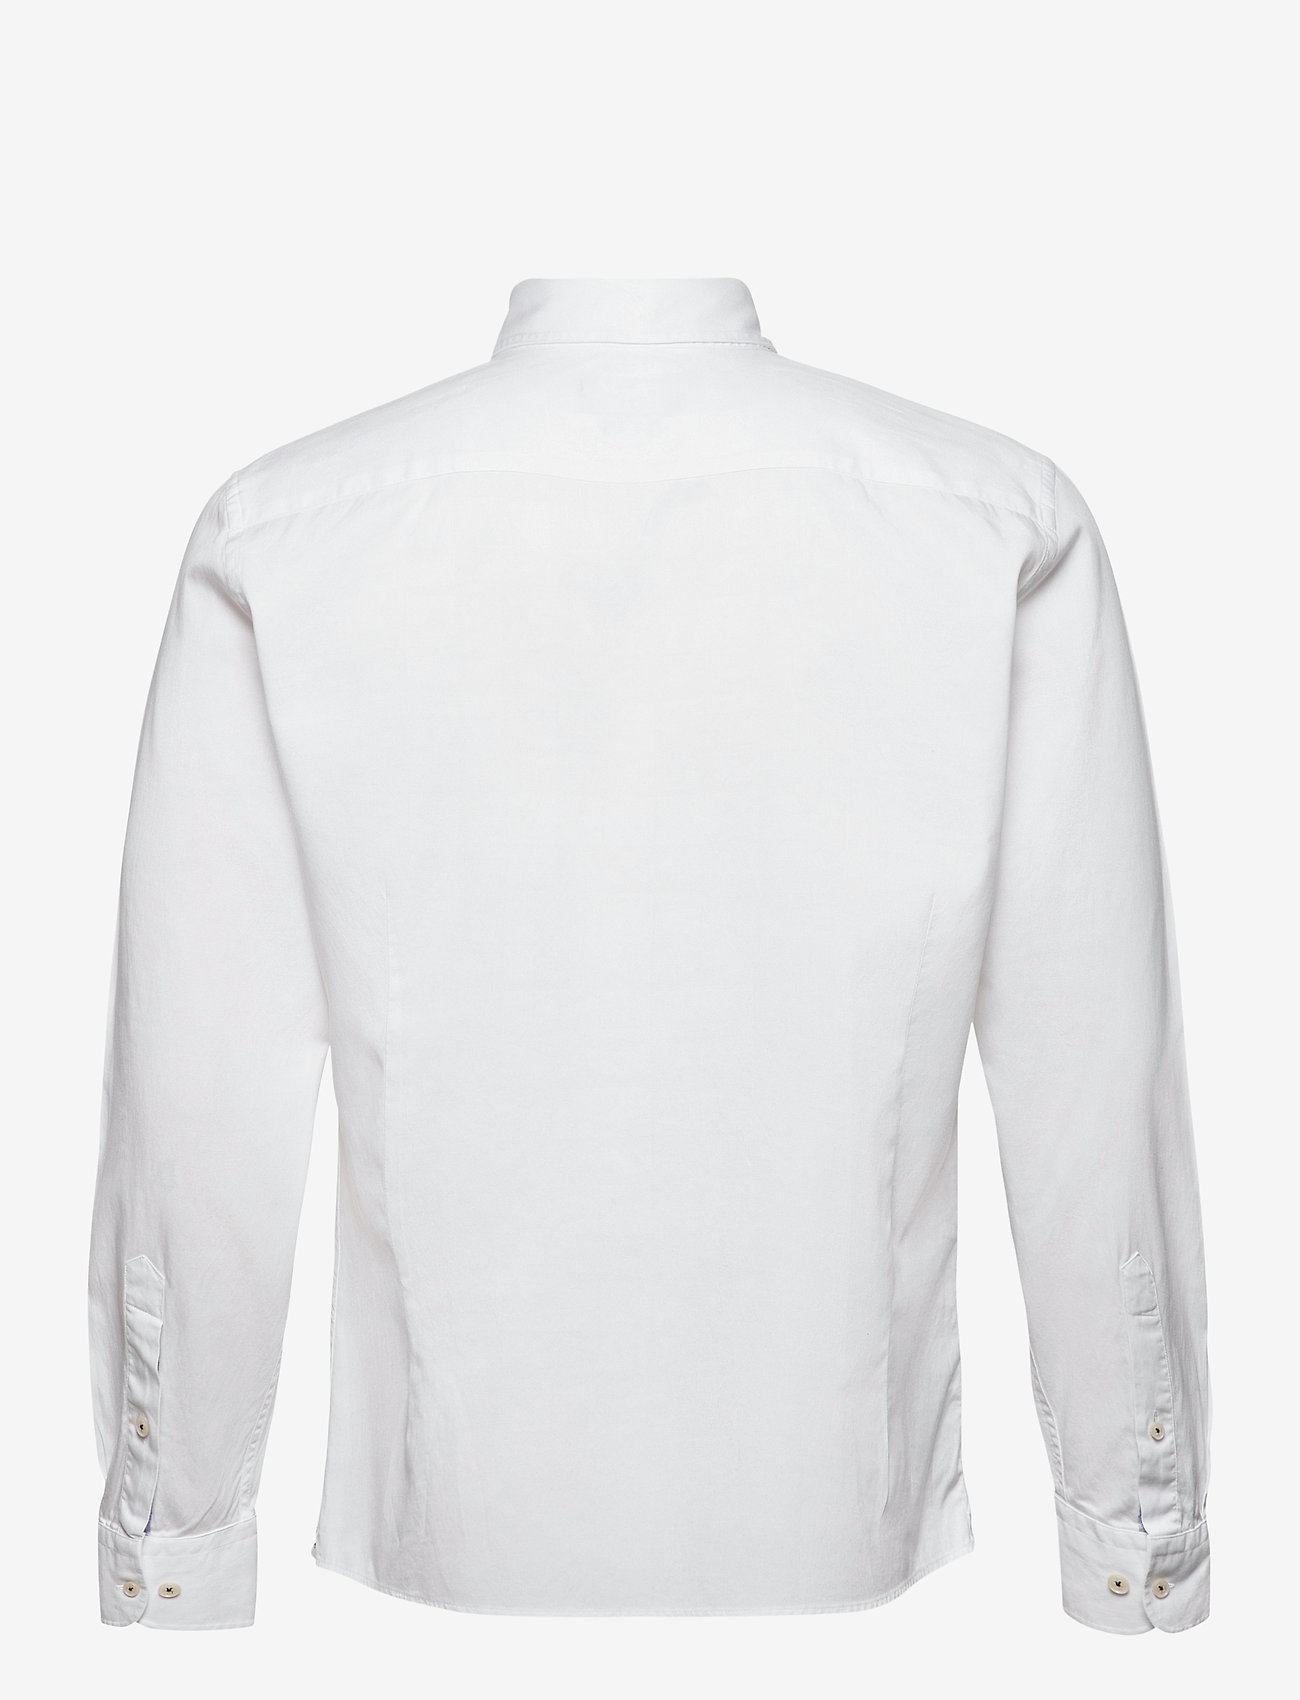 Hackett London CO TENCEL PIECE DYE - Skjorter WHITE - Menn Klær